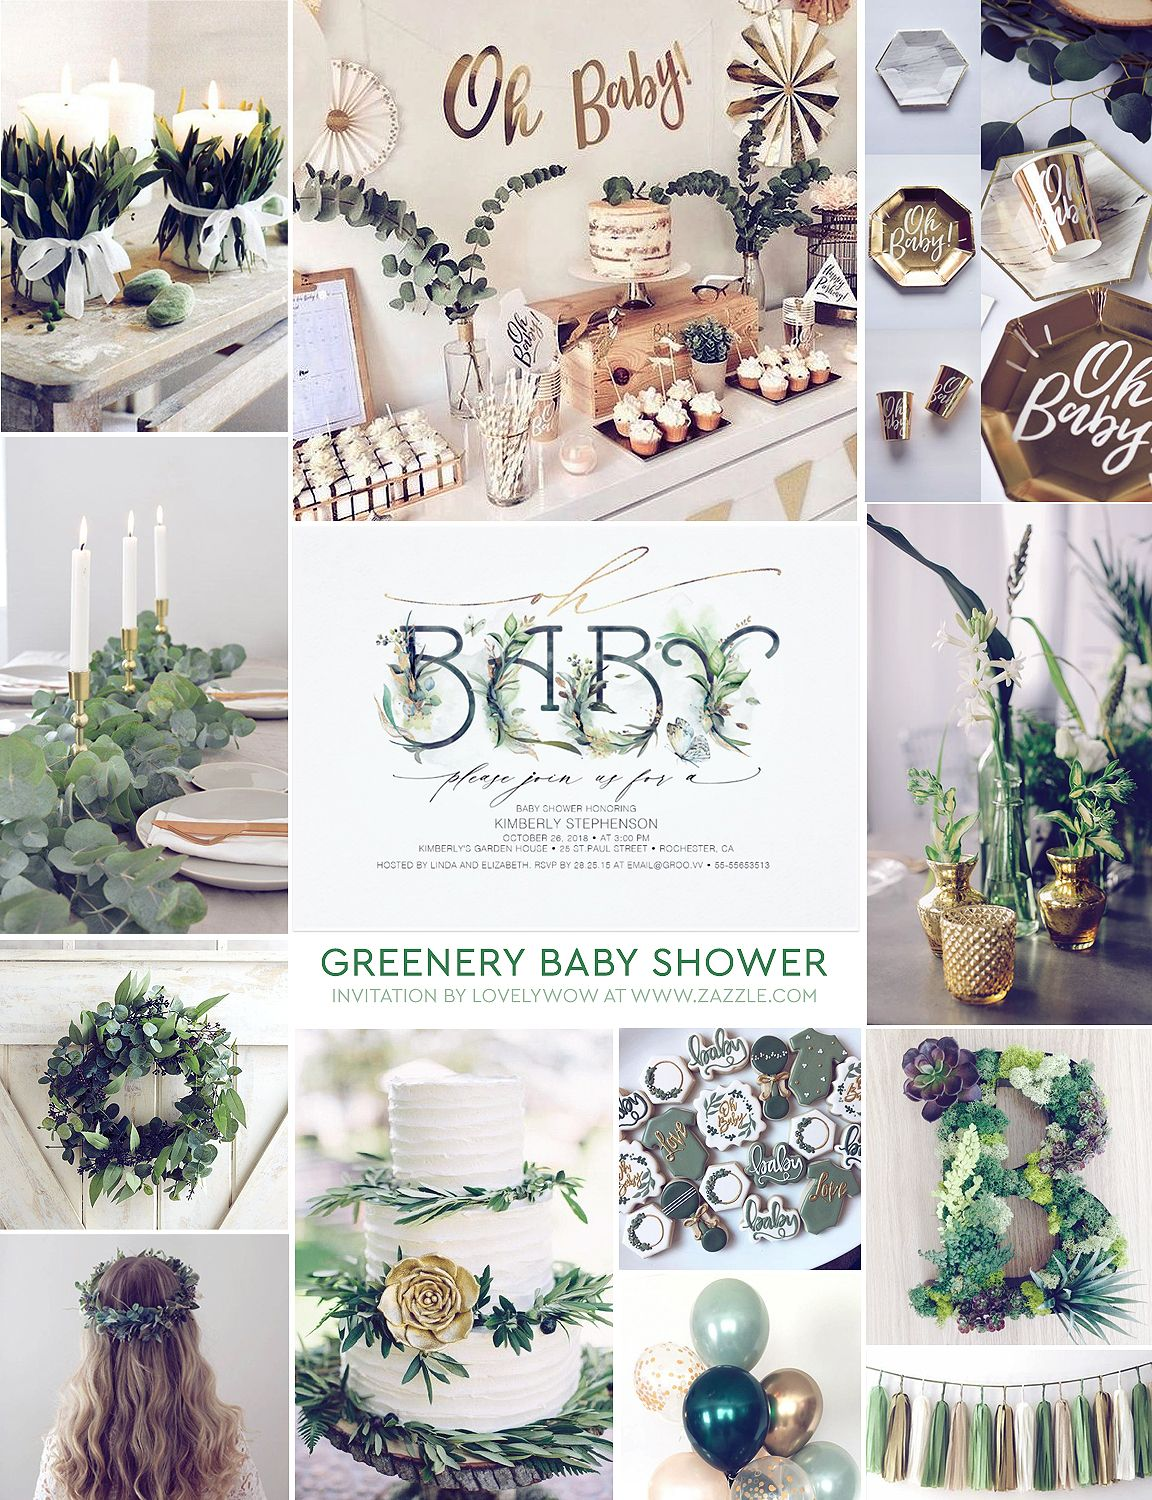 Oh Baby Greenery Baby Shower Gender Neutral Invitation Zazzle